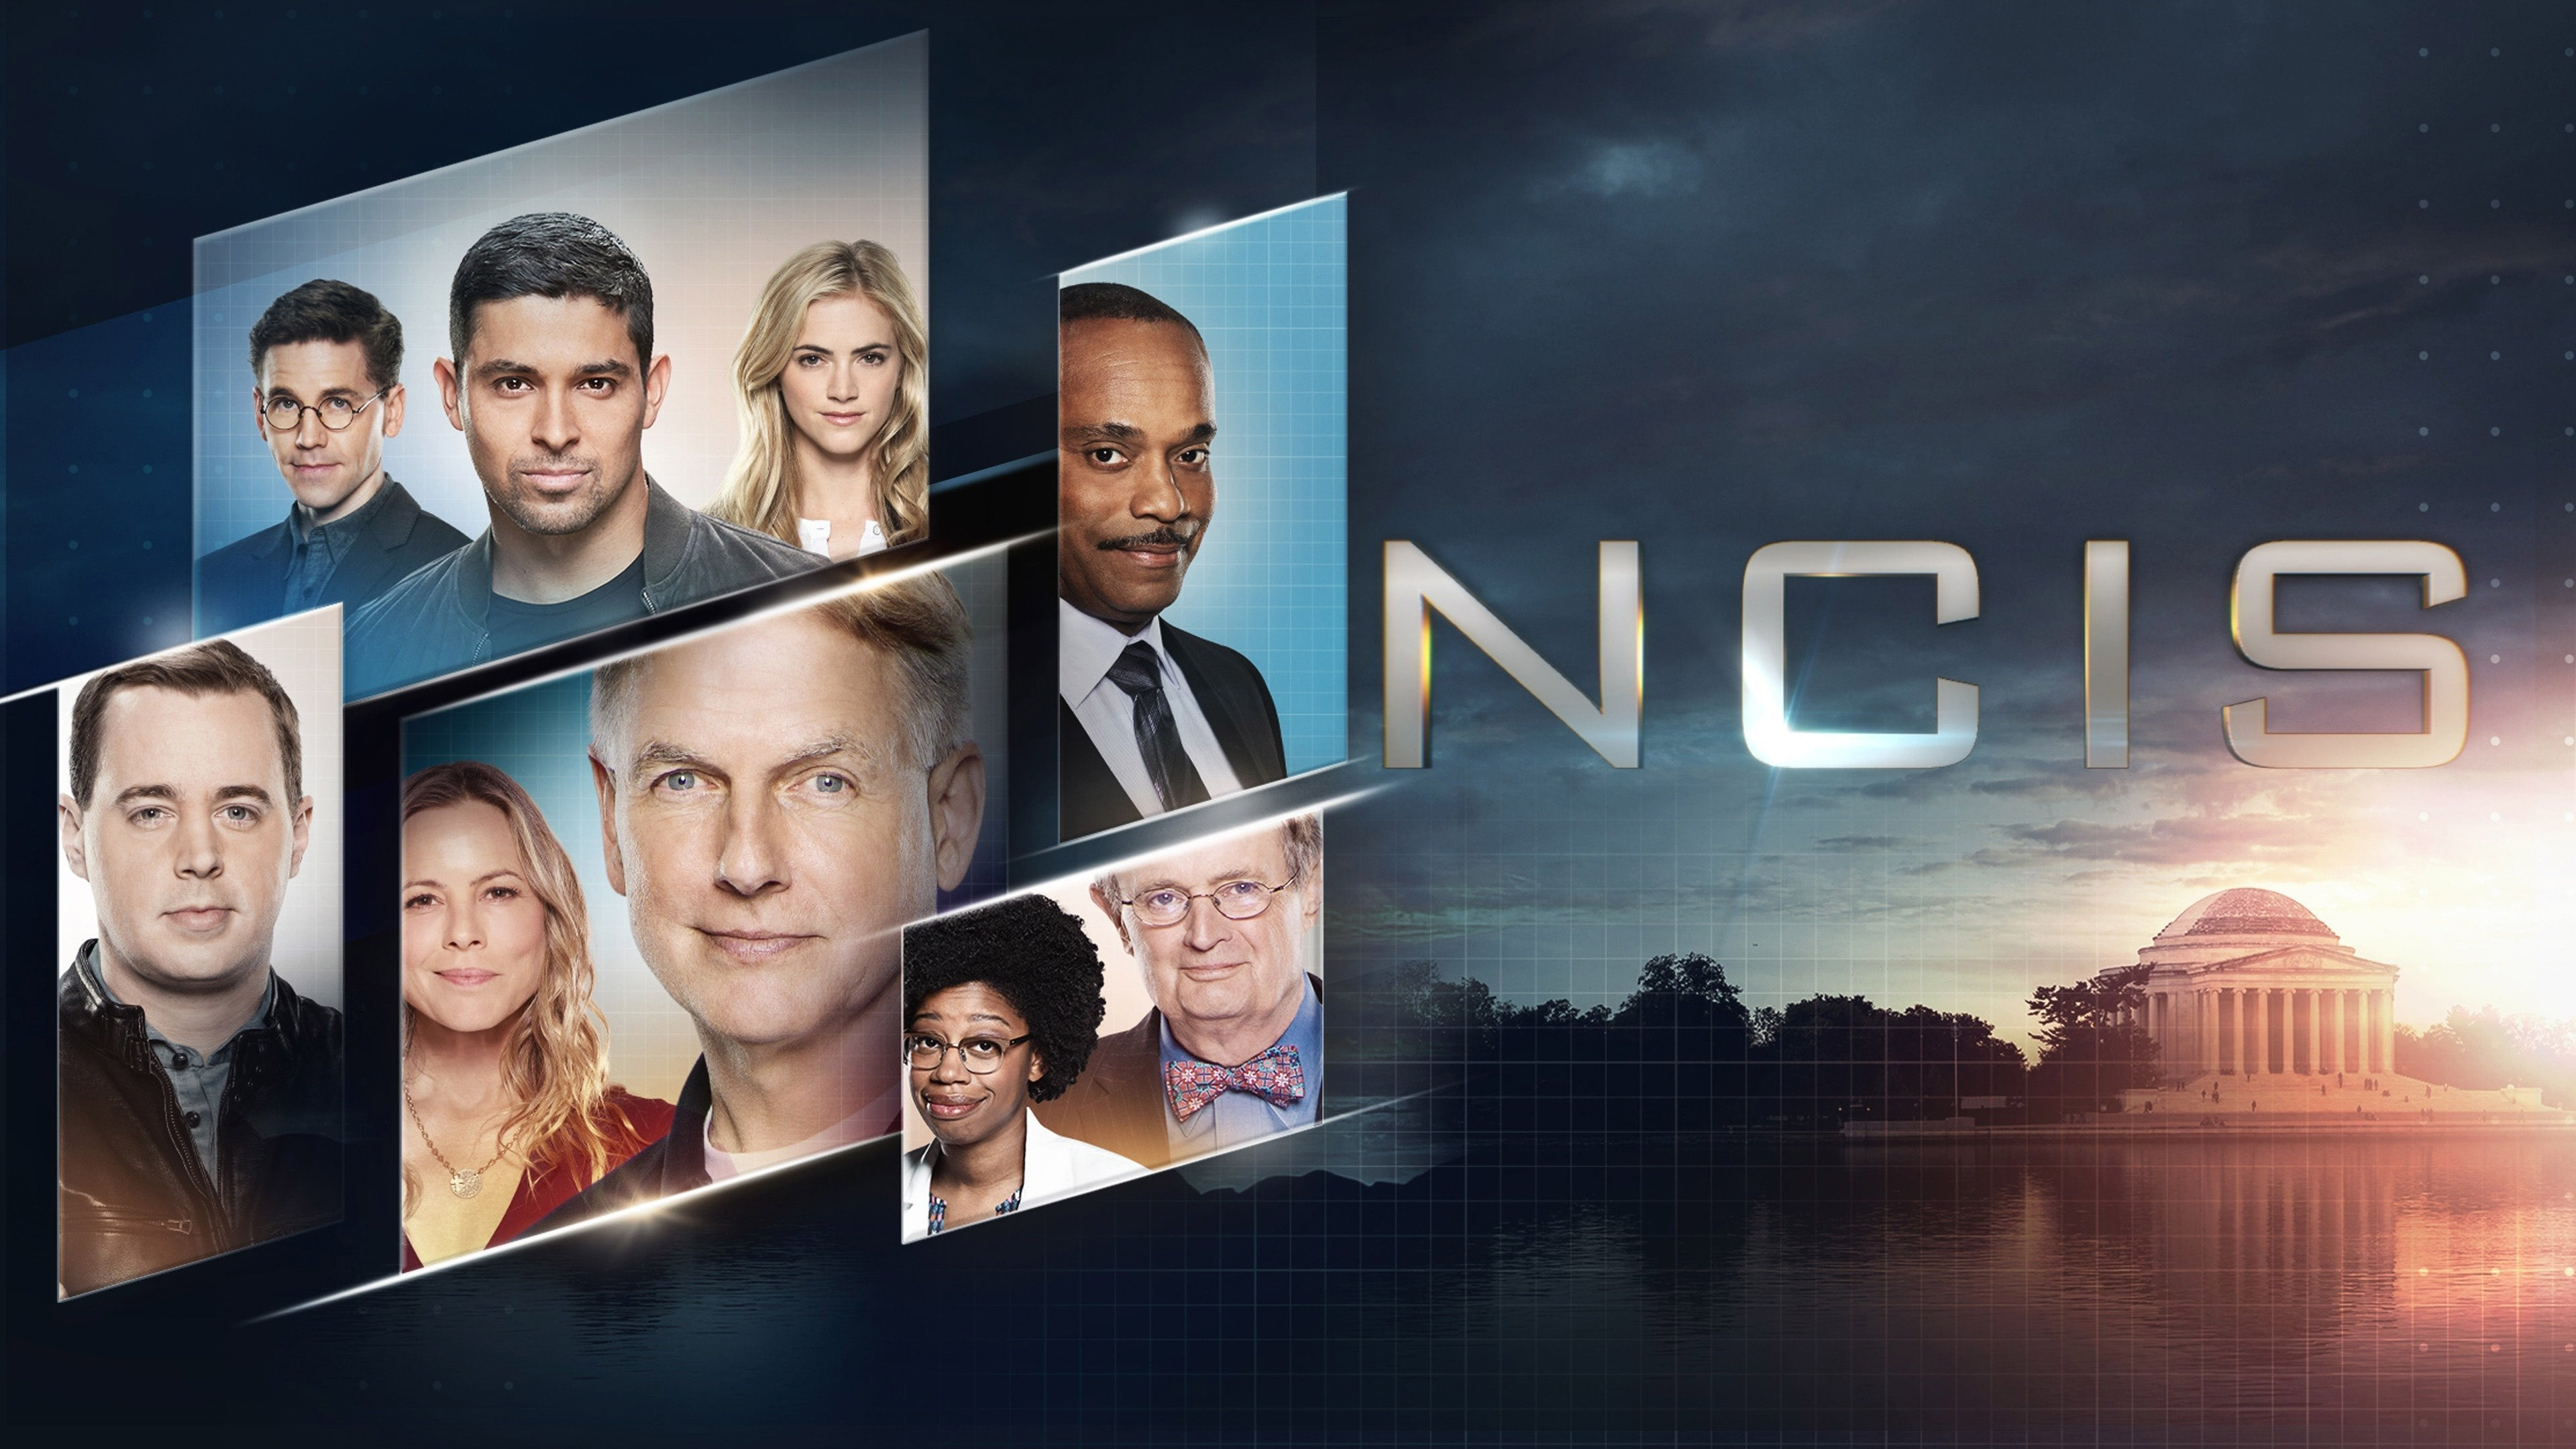 NCIS - Season 0 Episode 78 : Inside NCIS Vance's Office Highly Decorated